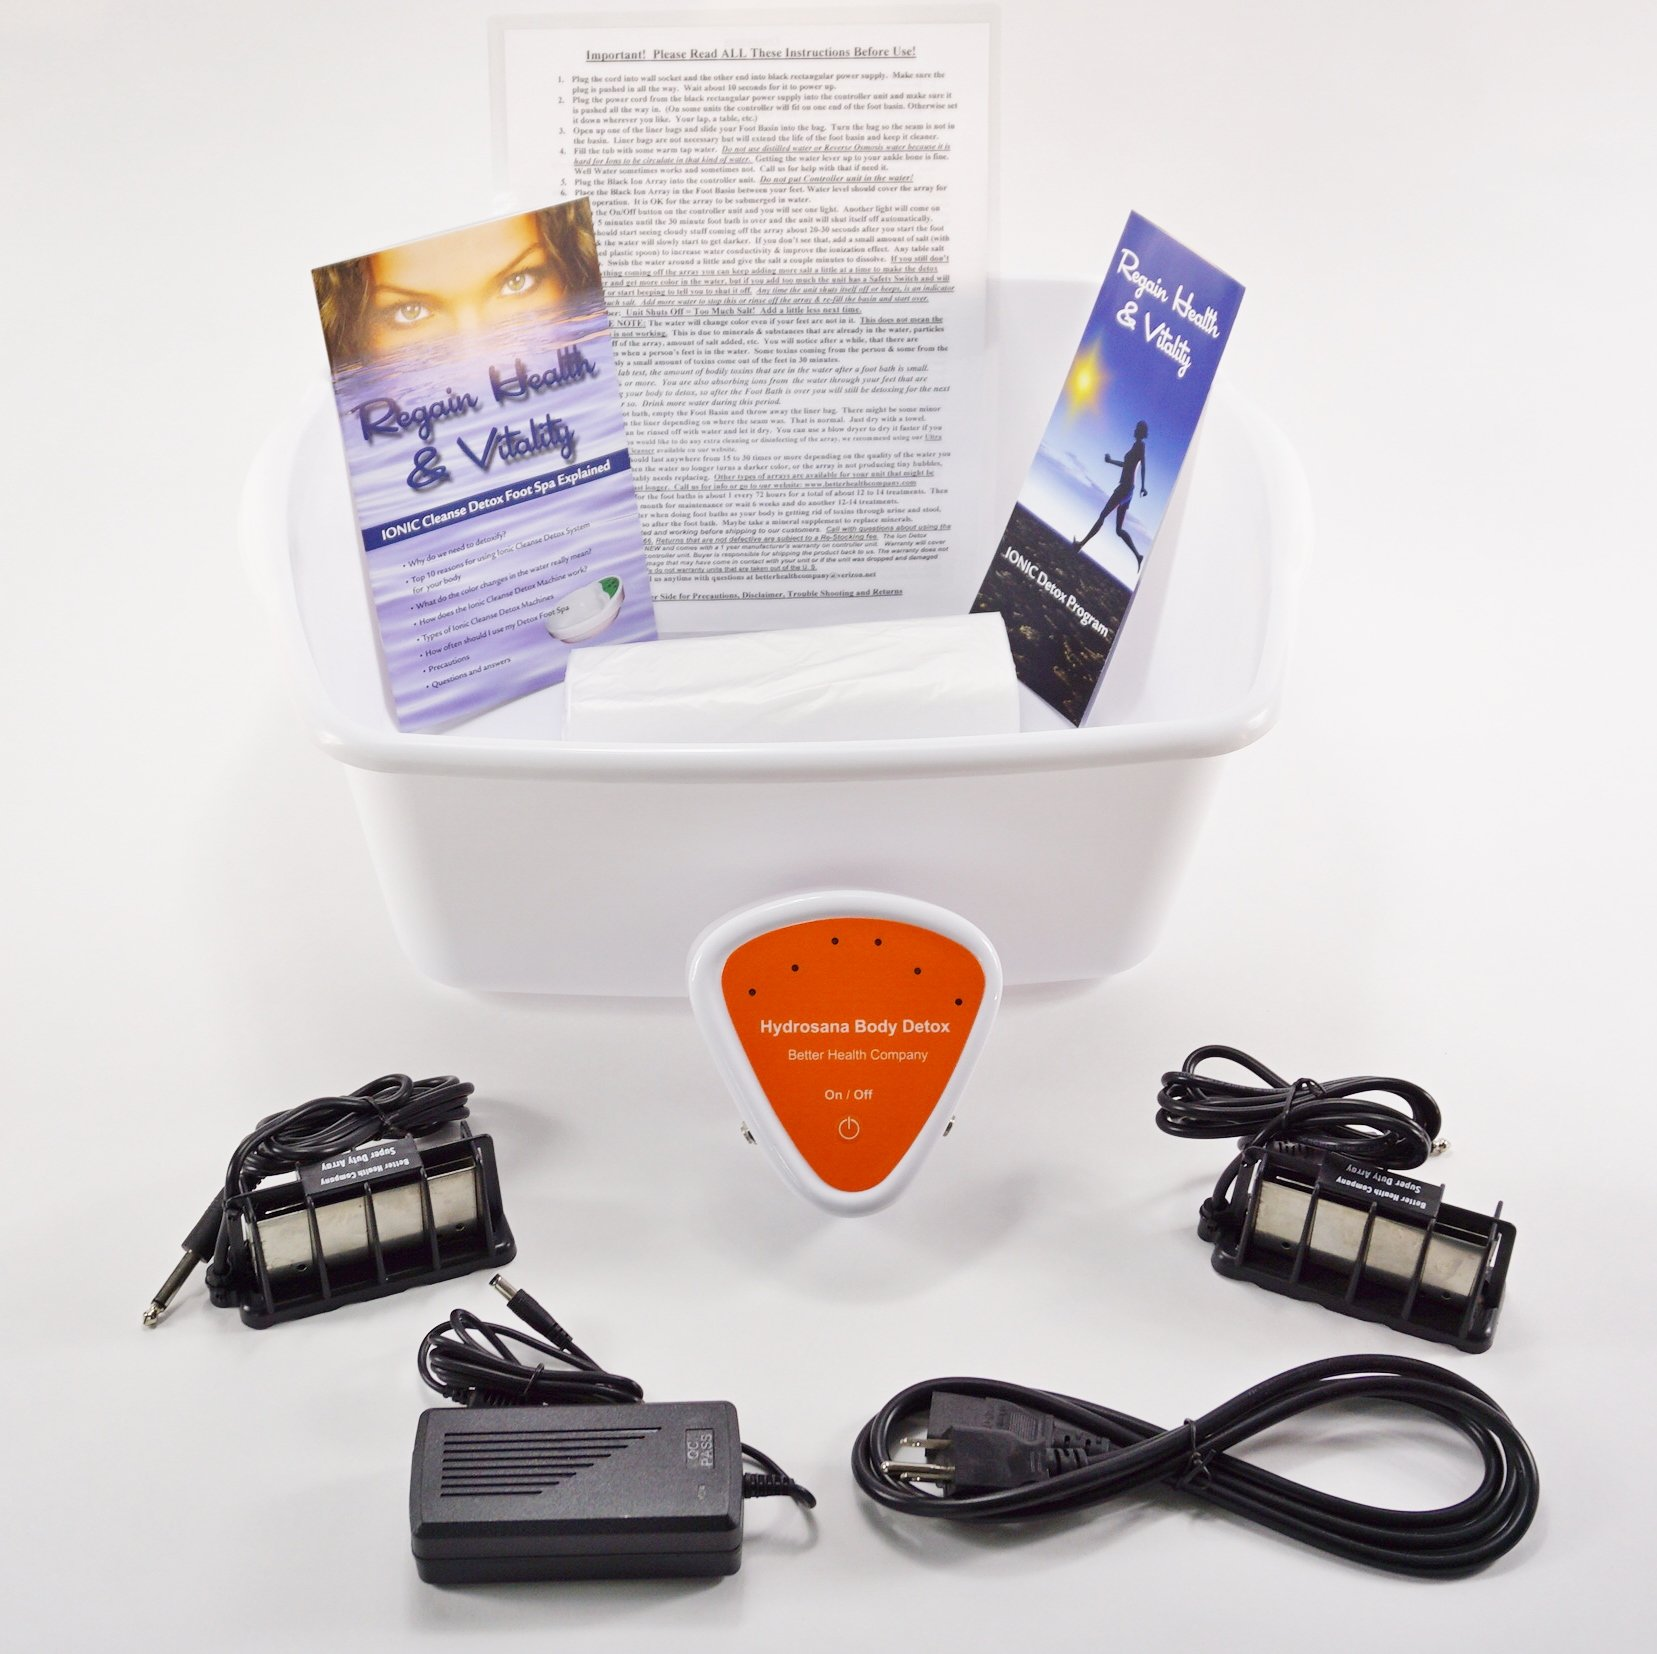 Foot Spa - Ionic Foot Cleanse - Foot Spa Bath. Detox Foot Spa Machine. Detox Foot Spa with Upgraded Stronger Super Duty Arrays. (A $60.00 Value.)